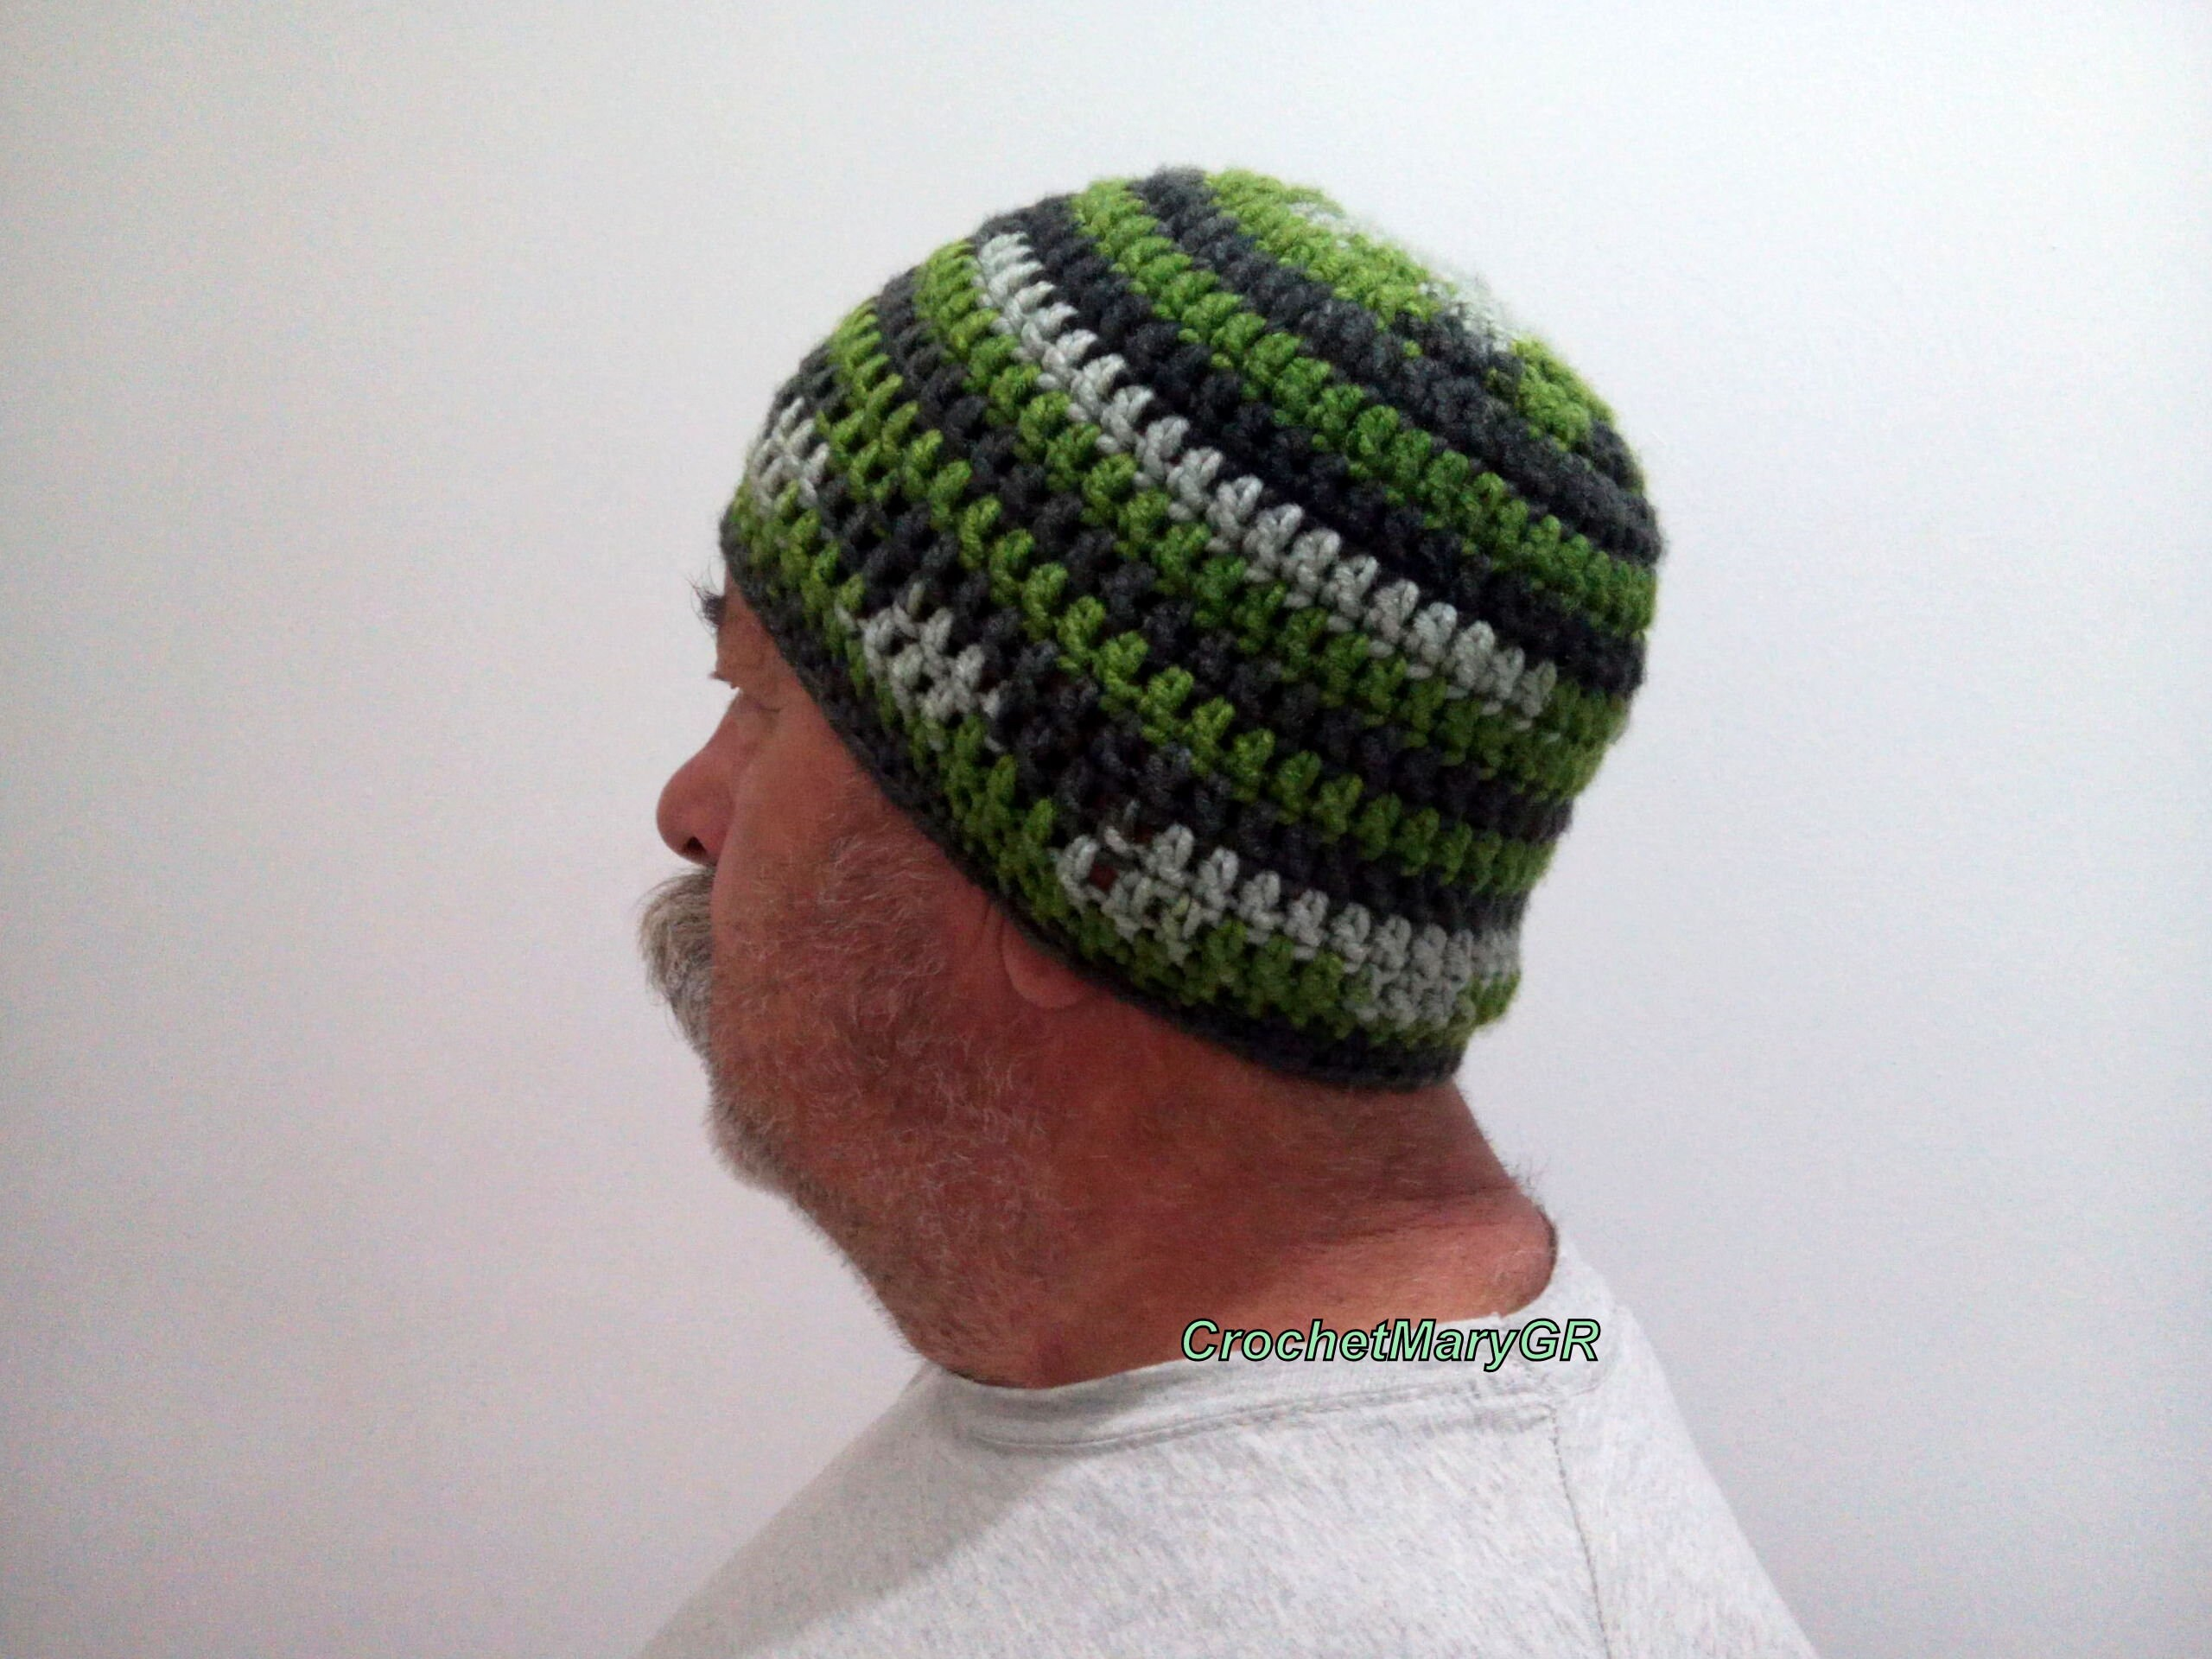 e94d44b55 Crochet Hat Man, Father's day, mens hat, adult crochet hat, Green crochet  hat, gift for him, gift for friends, winter hats